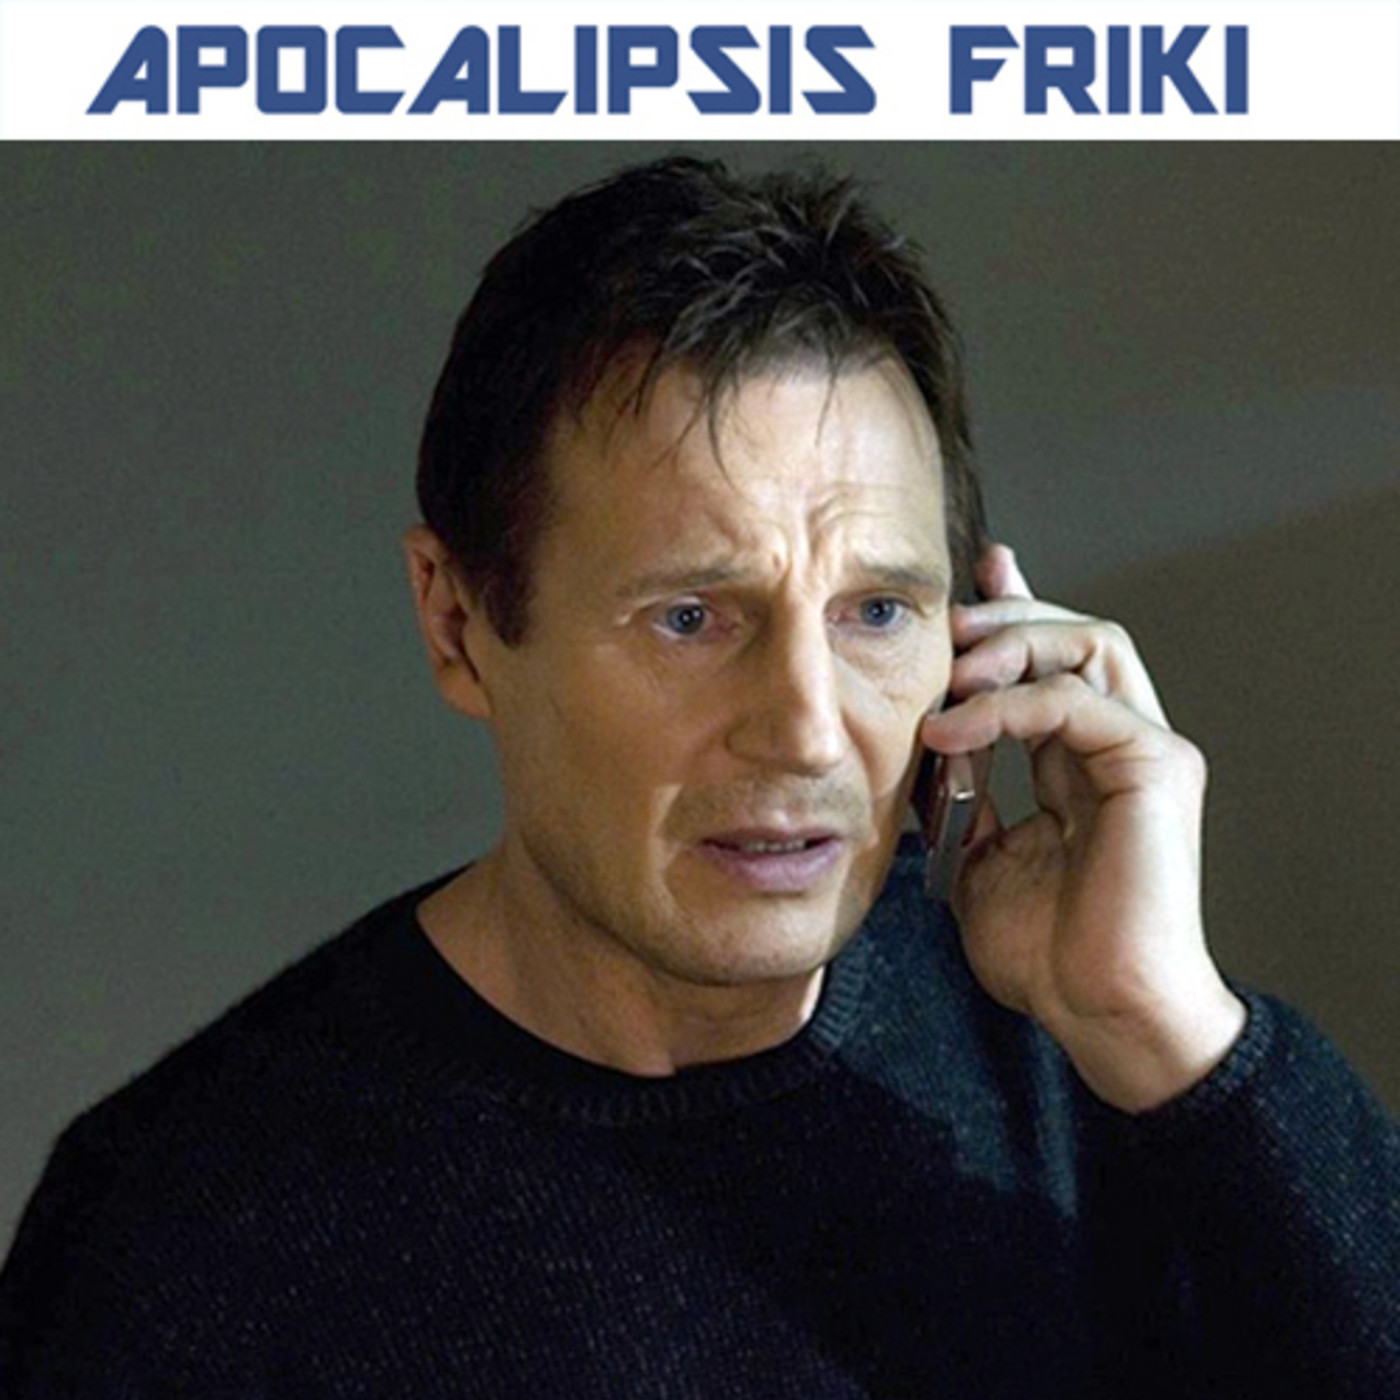 Apocalipsis Friki 121 - Liam Neeson, Old Action Hero